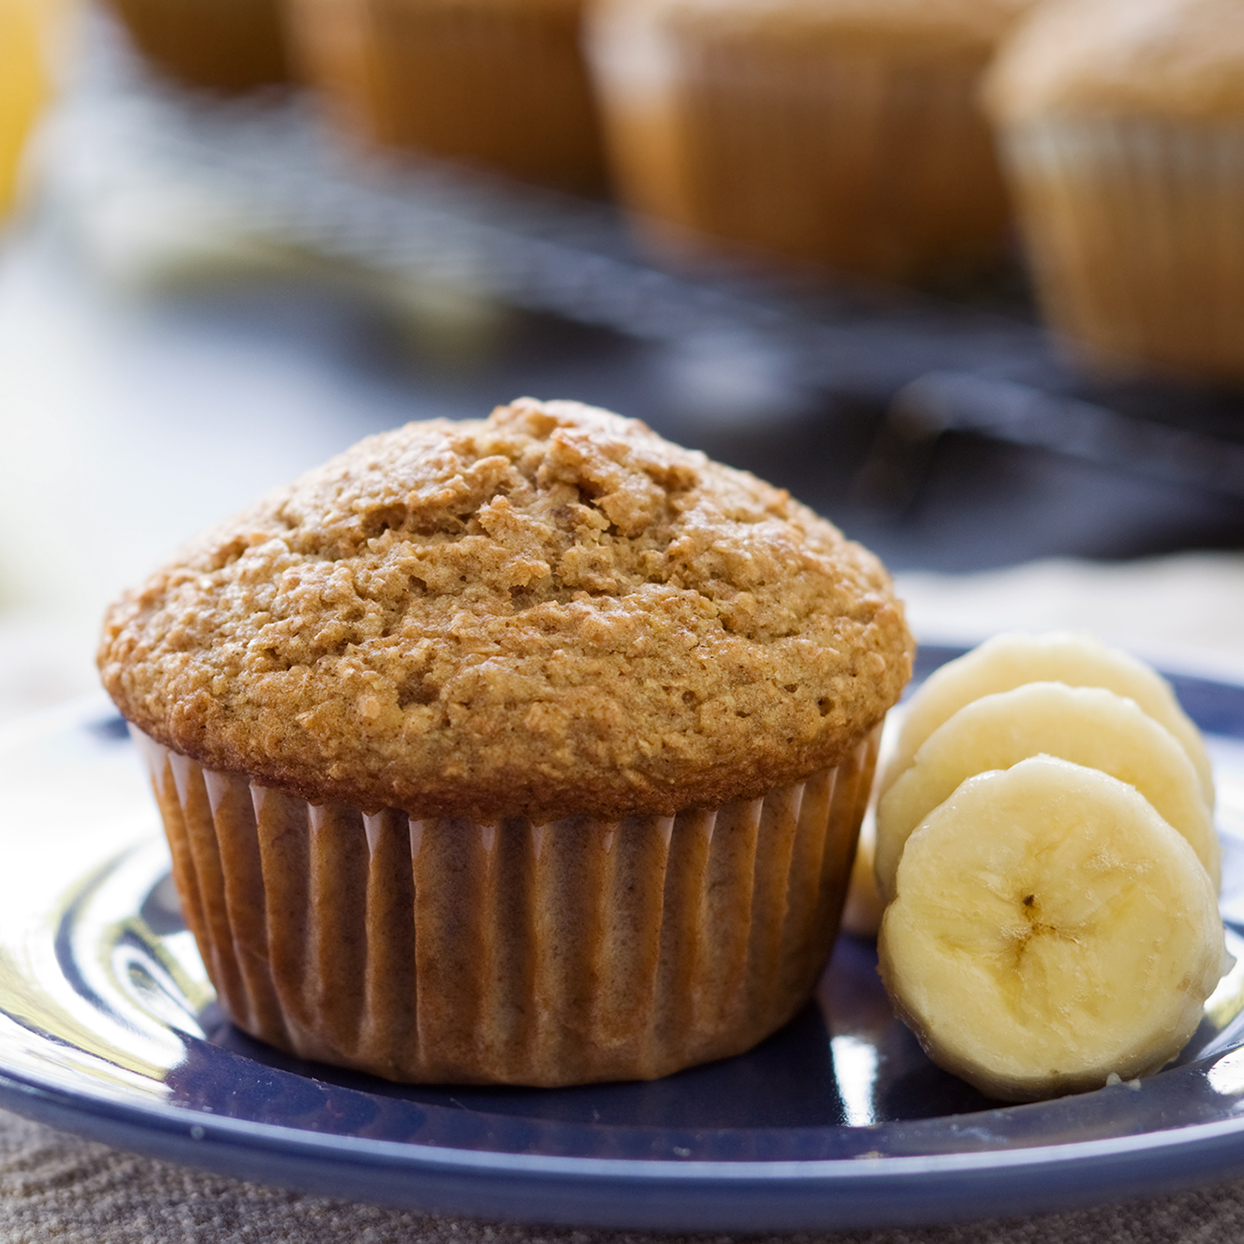 A banana bran muffin sits in front of bananas and other muffins.